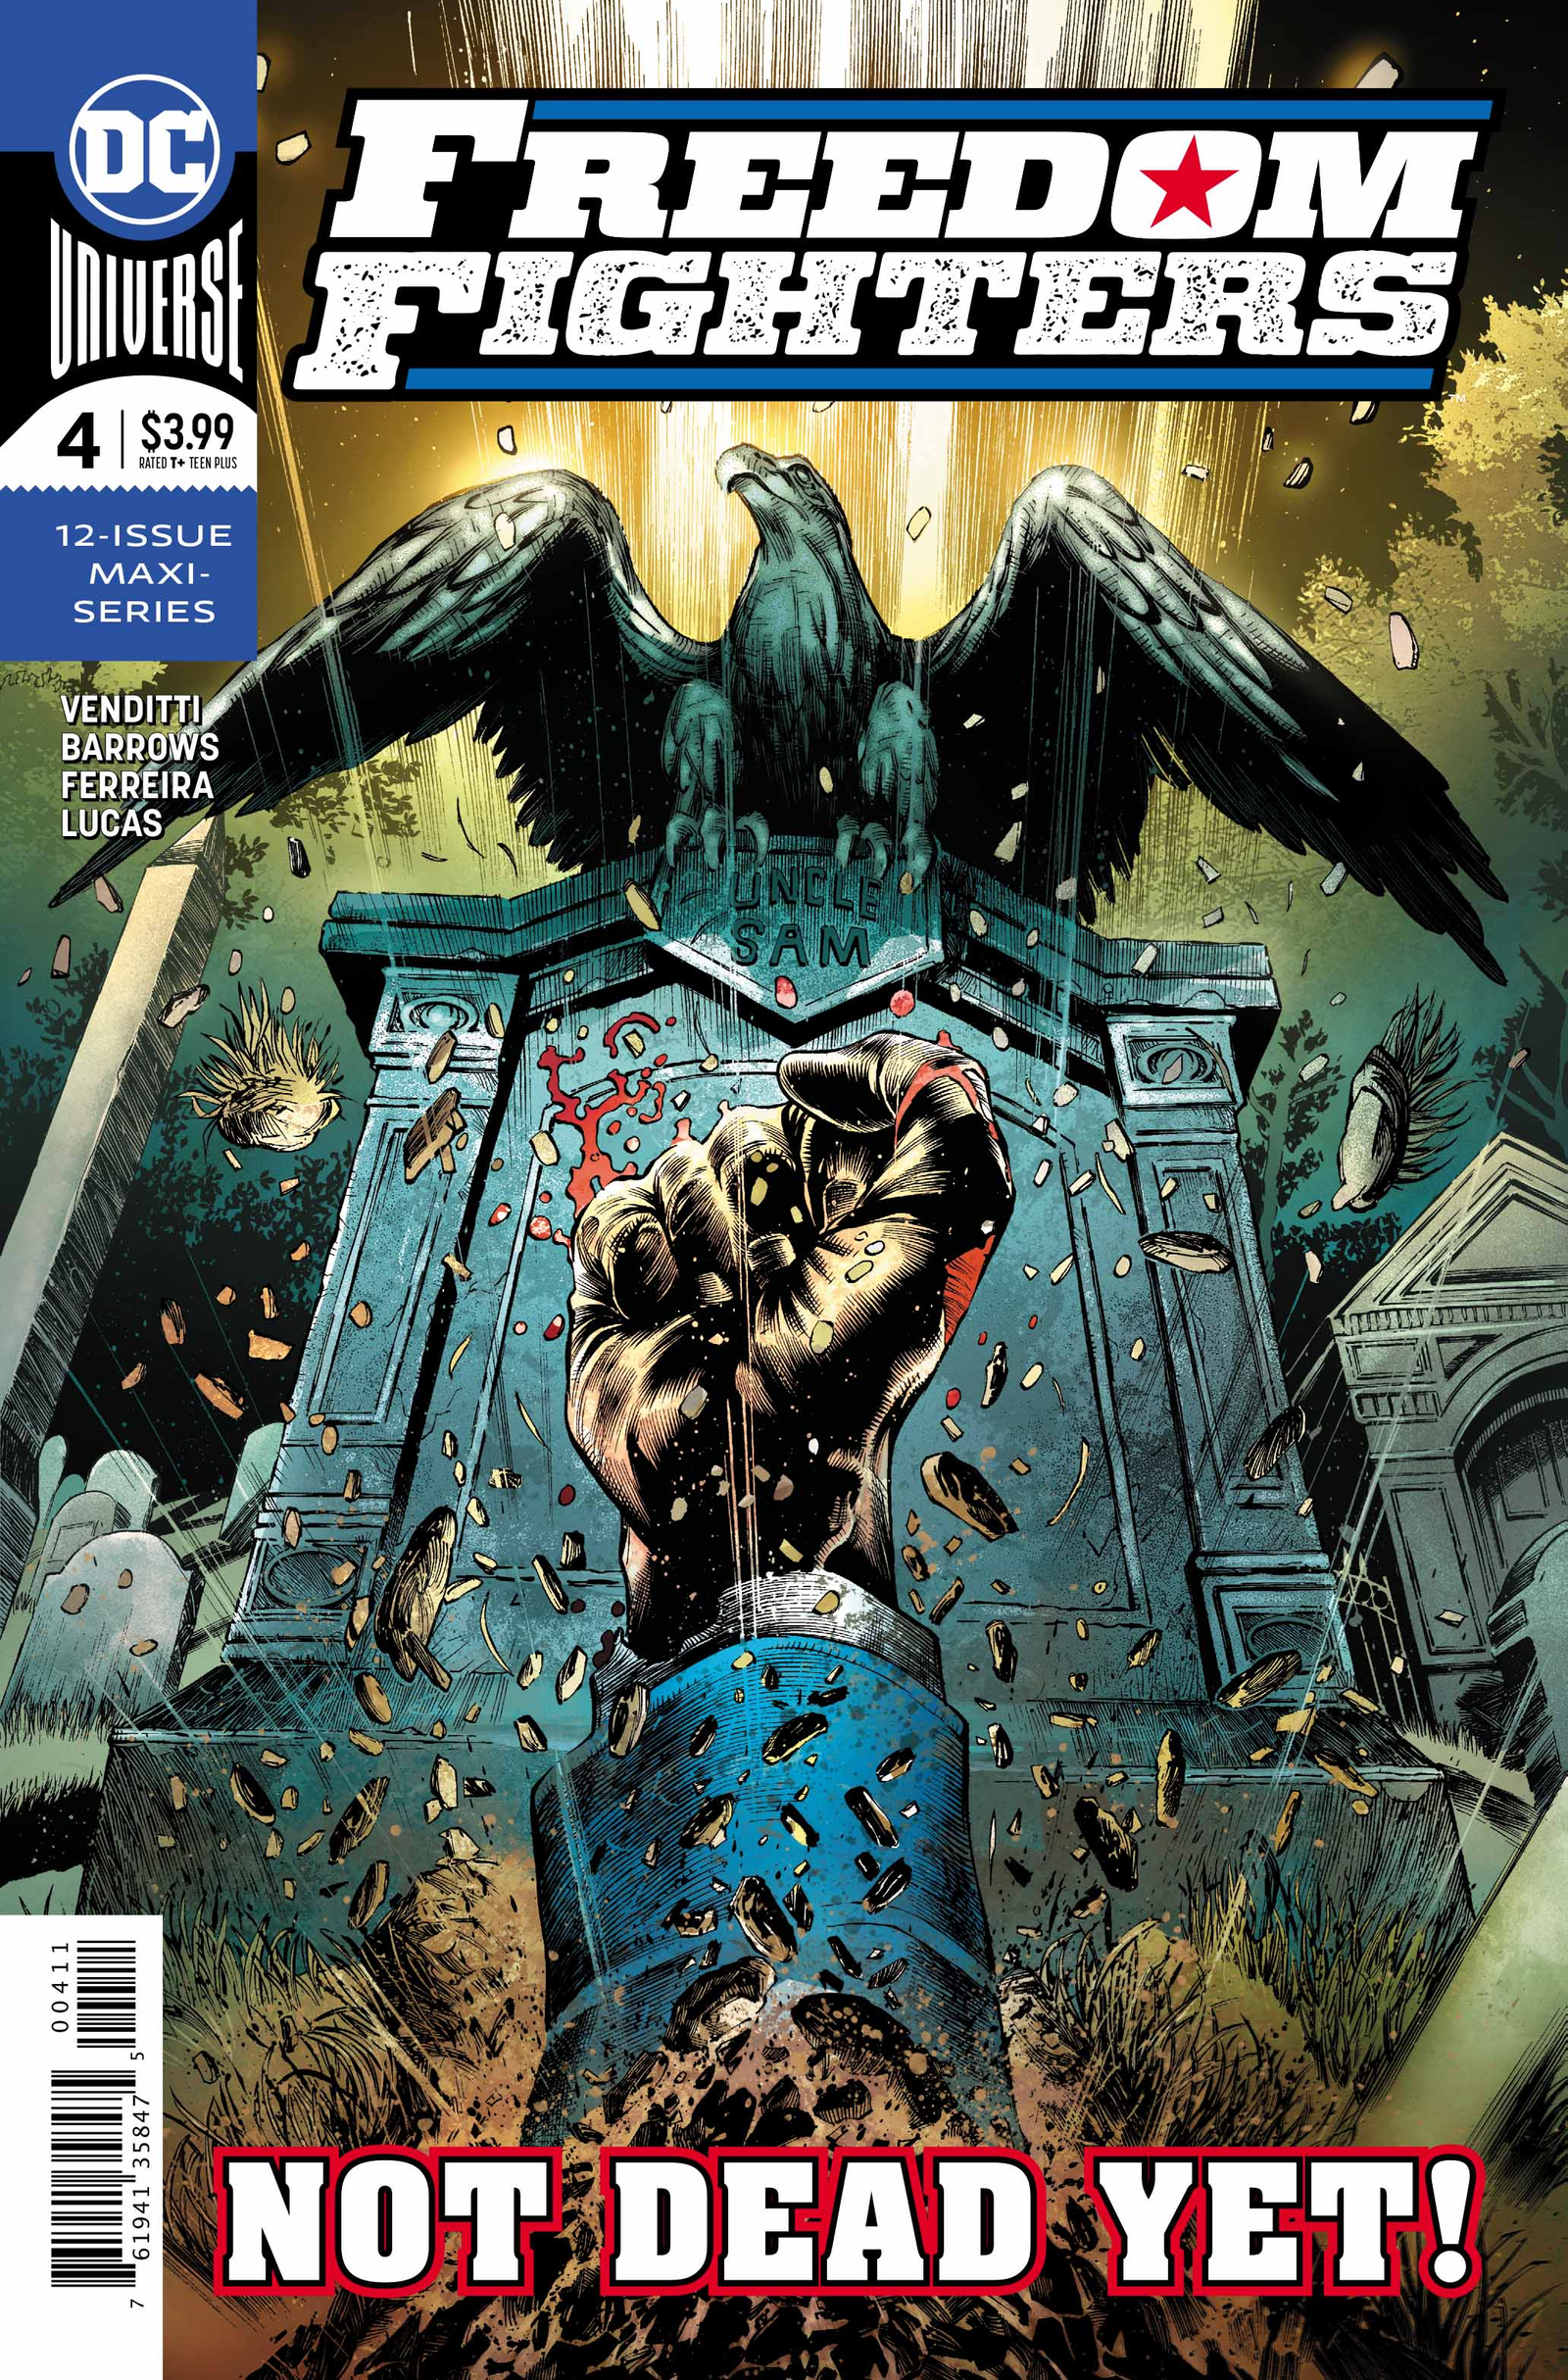 Cover by Eddy Barrows, Eber Ferreira, and Adriano Lucas